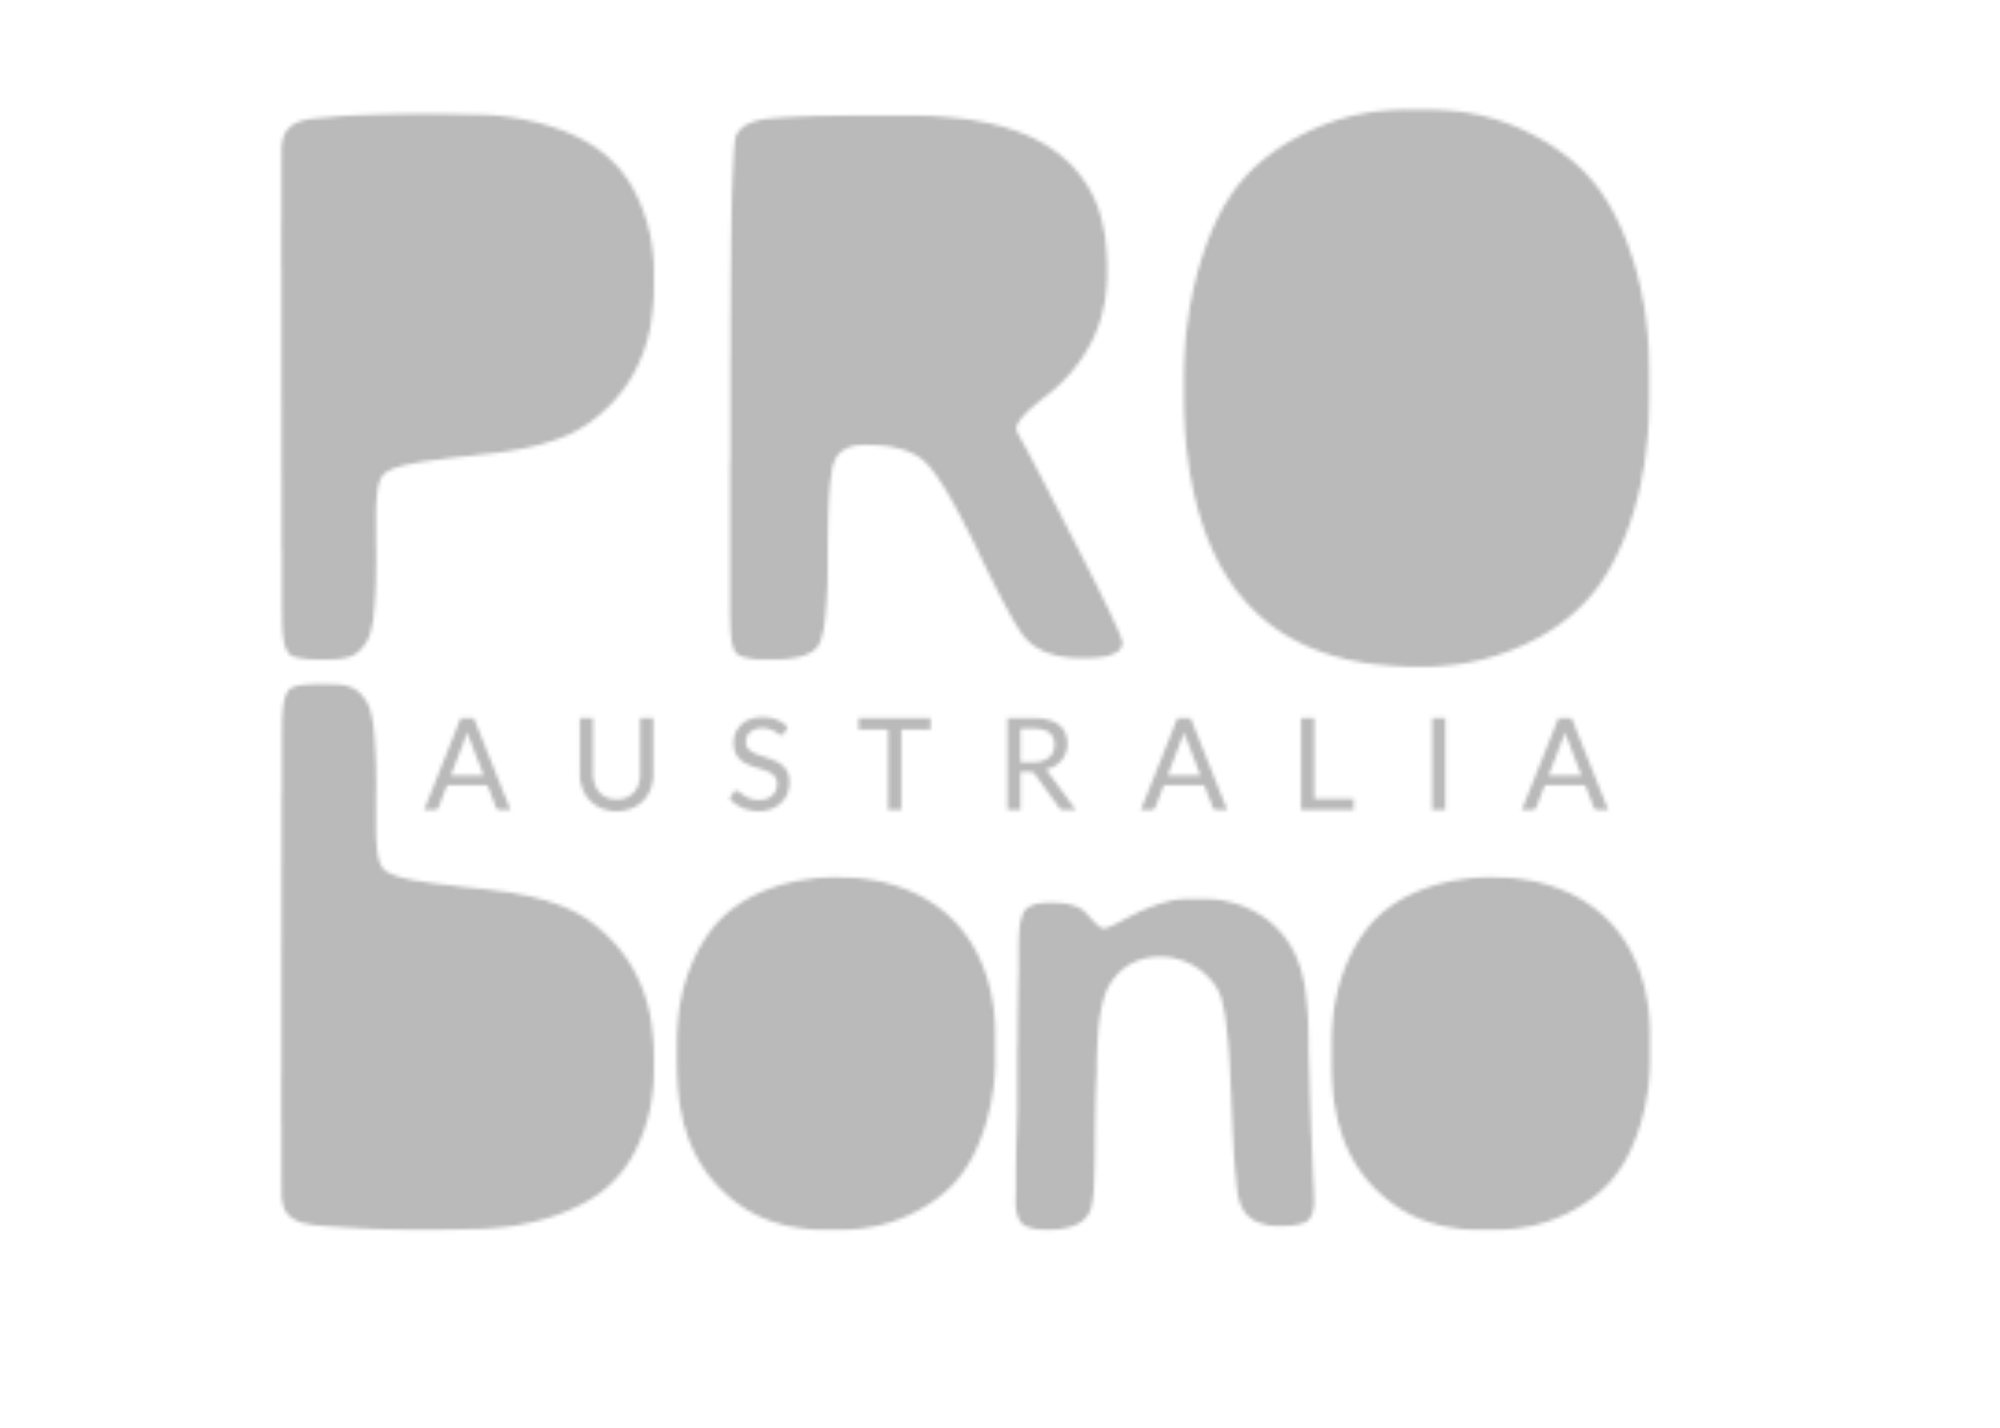 Pro Bono Australia - Our Ark providing an insurance alternative to NFPs and Charities.